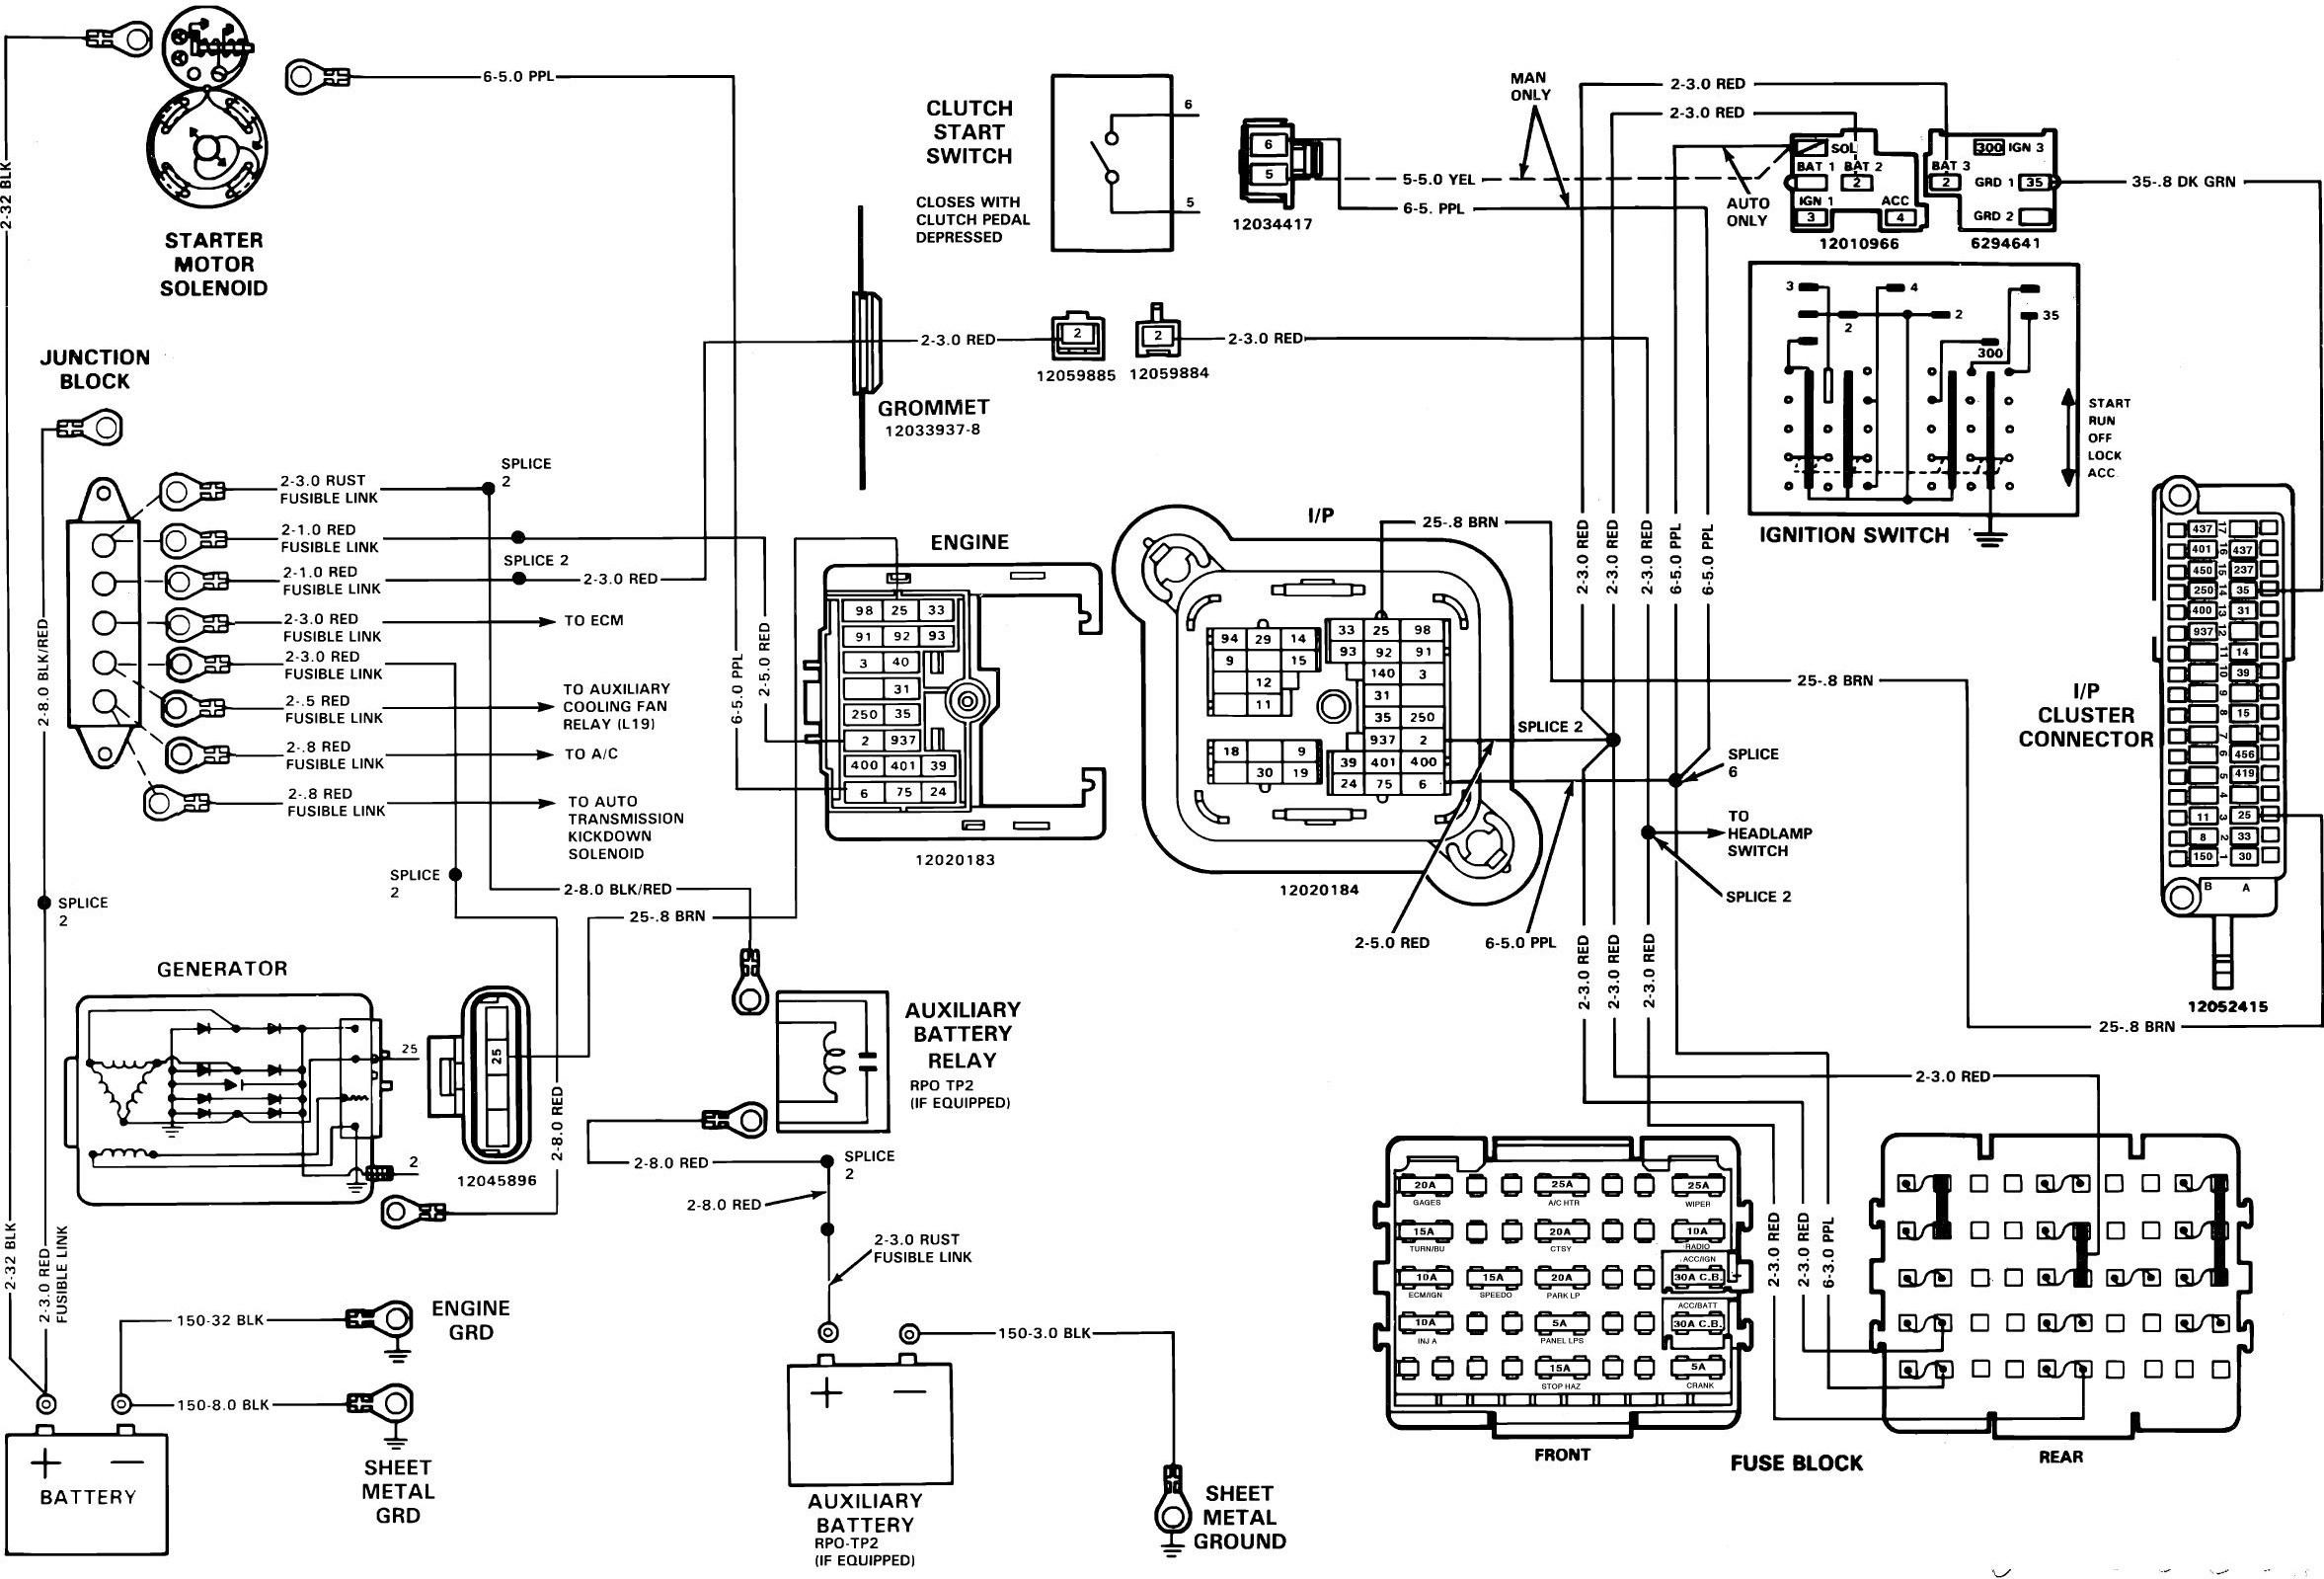 f3cd 4 20ma circuit diagram epanel digital books nordyne fehb 017ha wiring diagram on a model